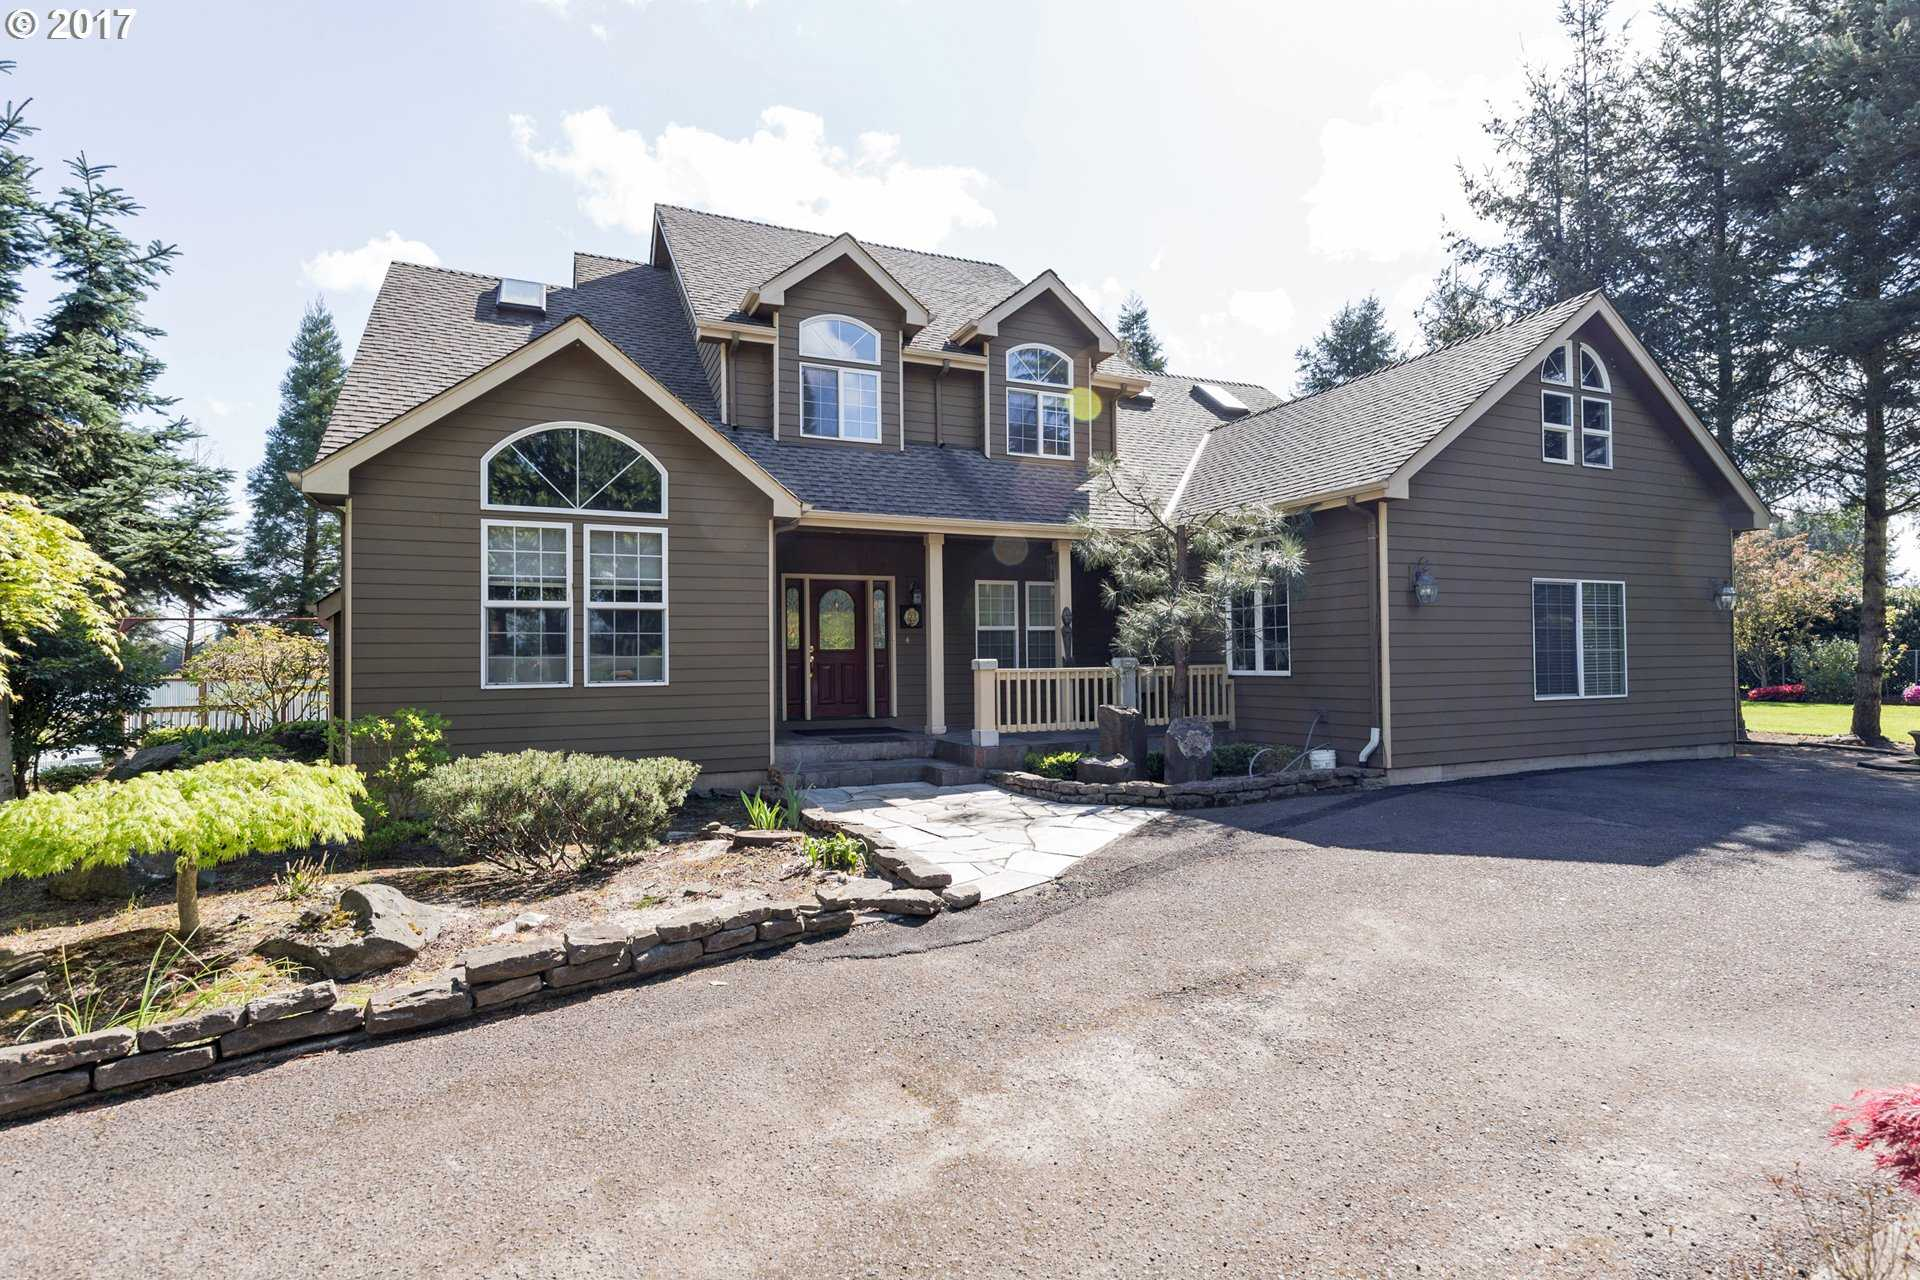 $586,000 - 4Br/3Ba -  for Sale in Canby